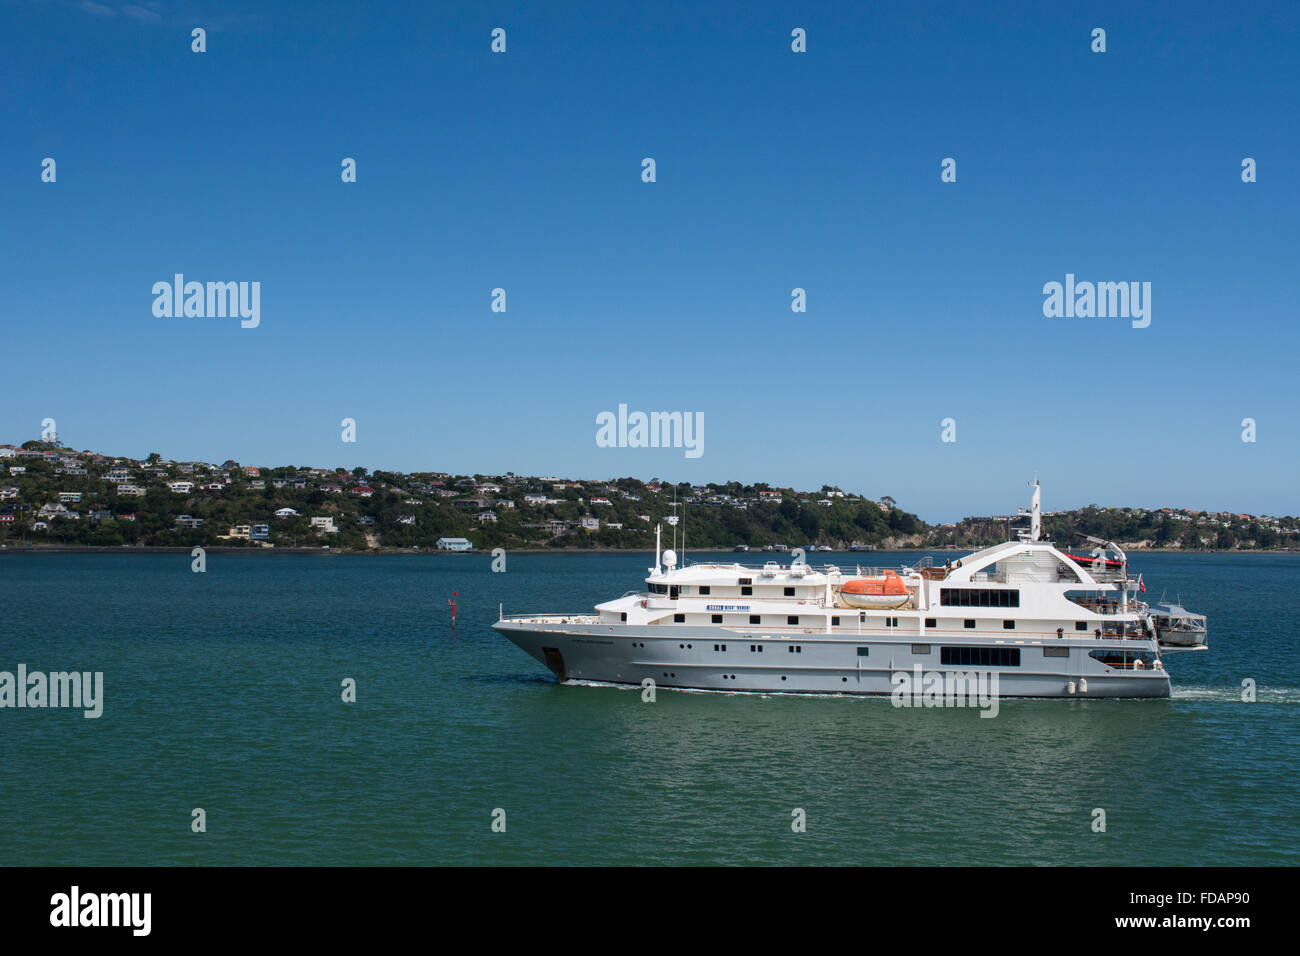 New Zealand, South Island, Dunedin, Otago Peninsula. Expedition cruise ship, Coral Discoverer. - Stock Image